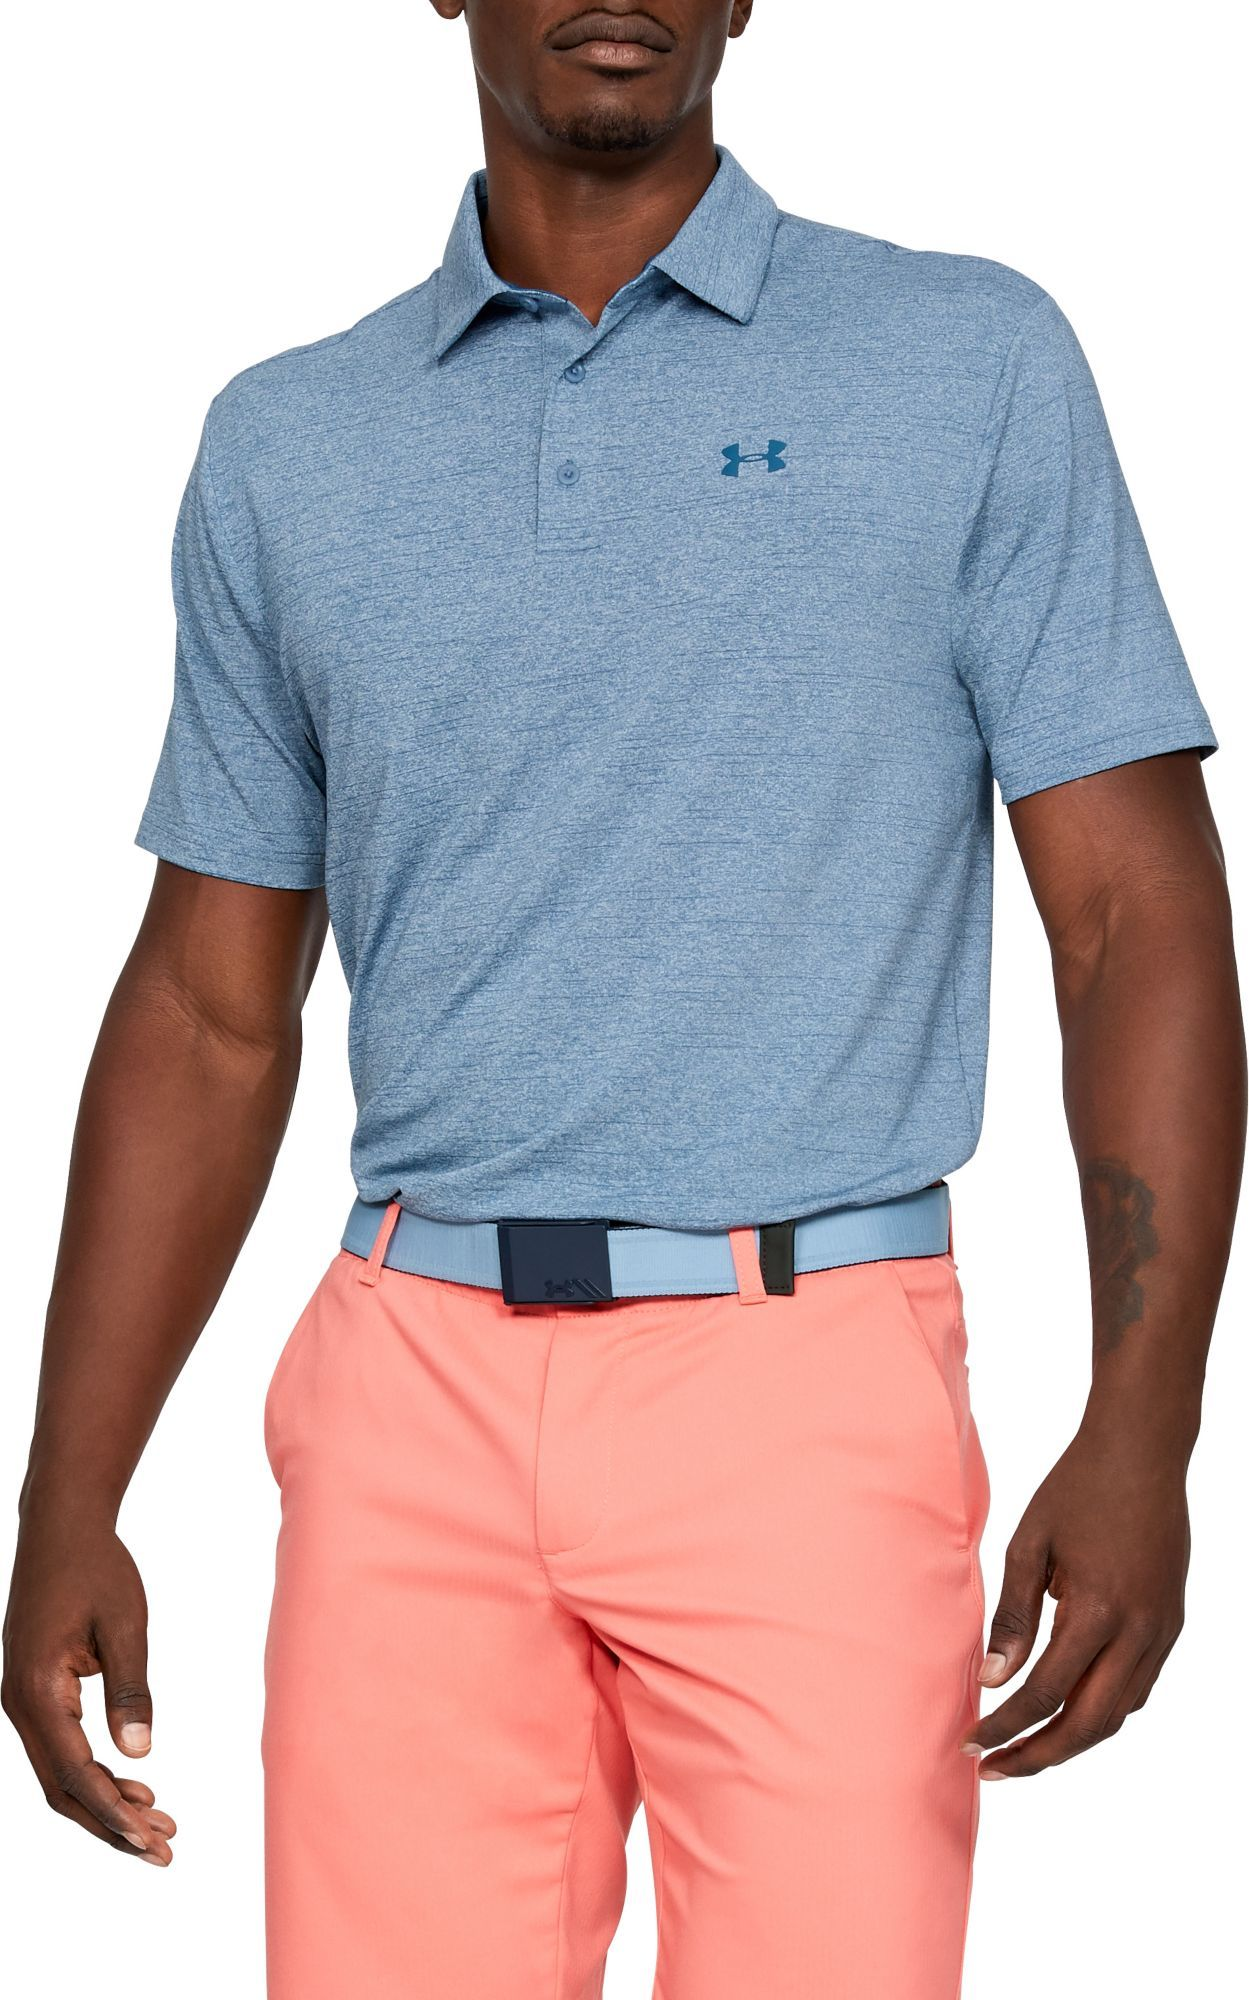 3f871ebe34 Under Armour Men's Playoff Laser Golf Polo in 2019 | Products ...